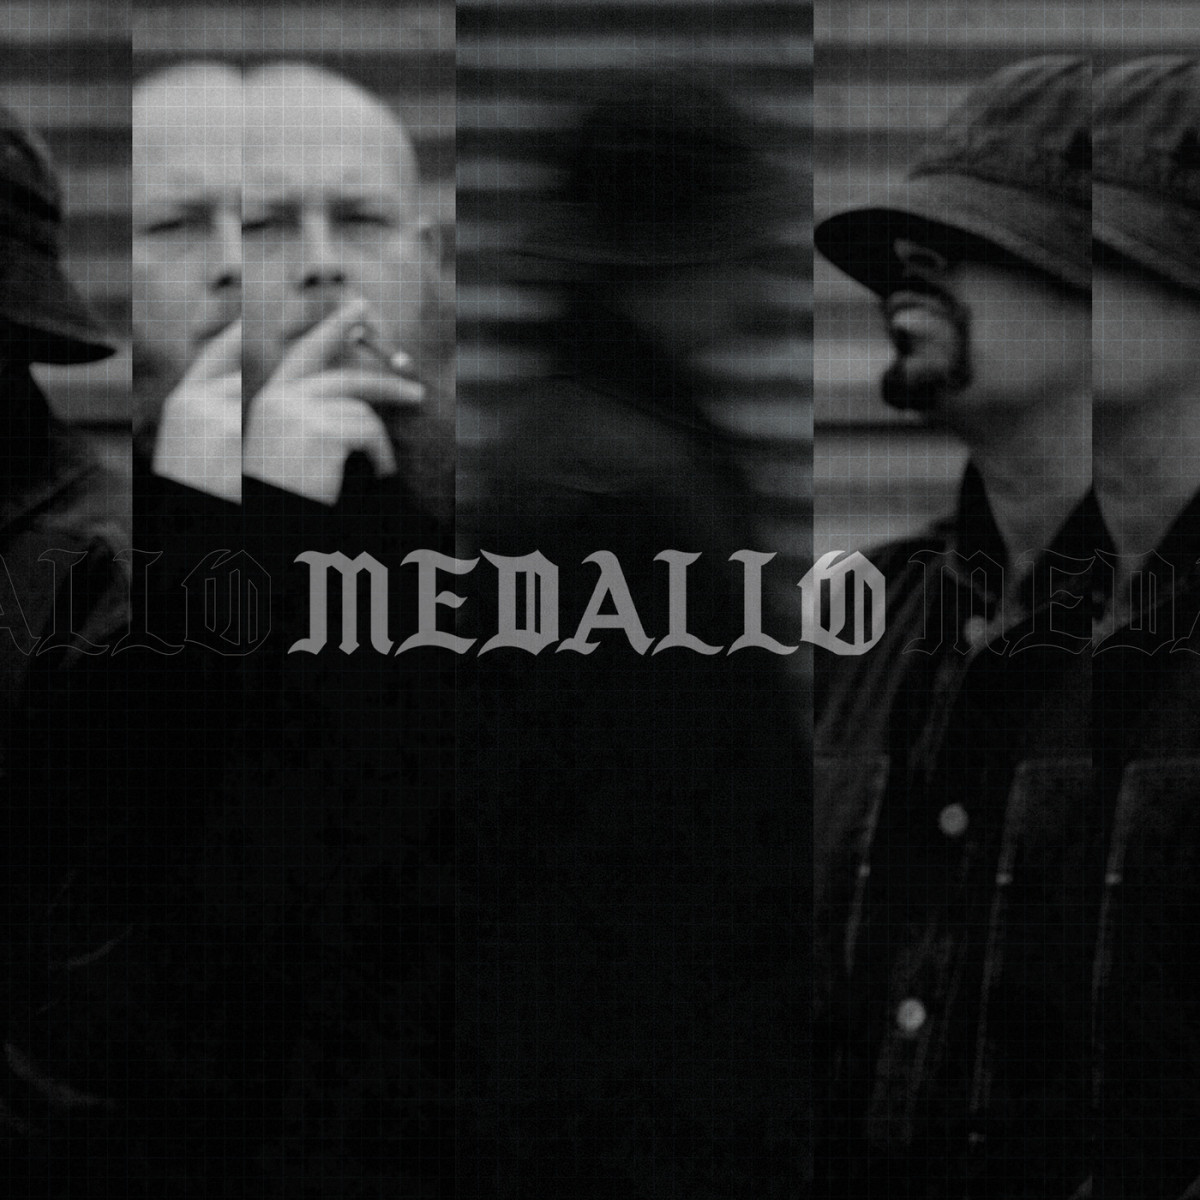 DJ Muggs & Crimeapple — «Medallo»